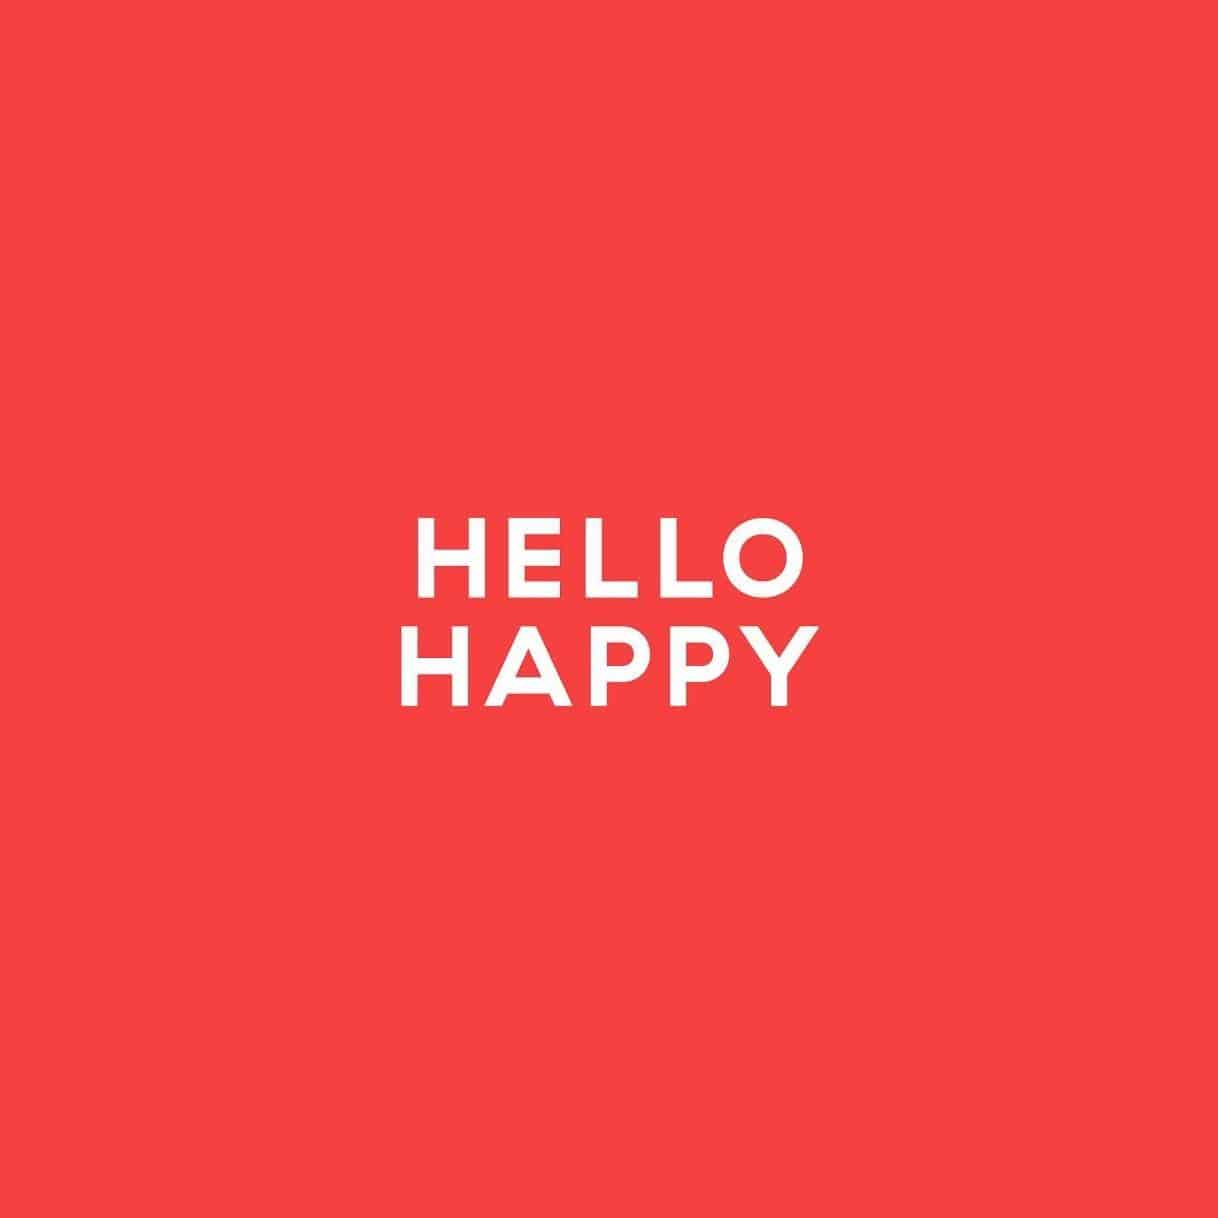 Hello Happy Co logo